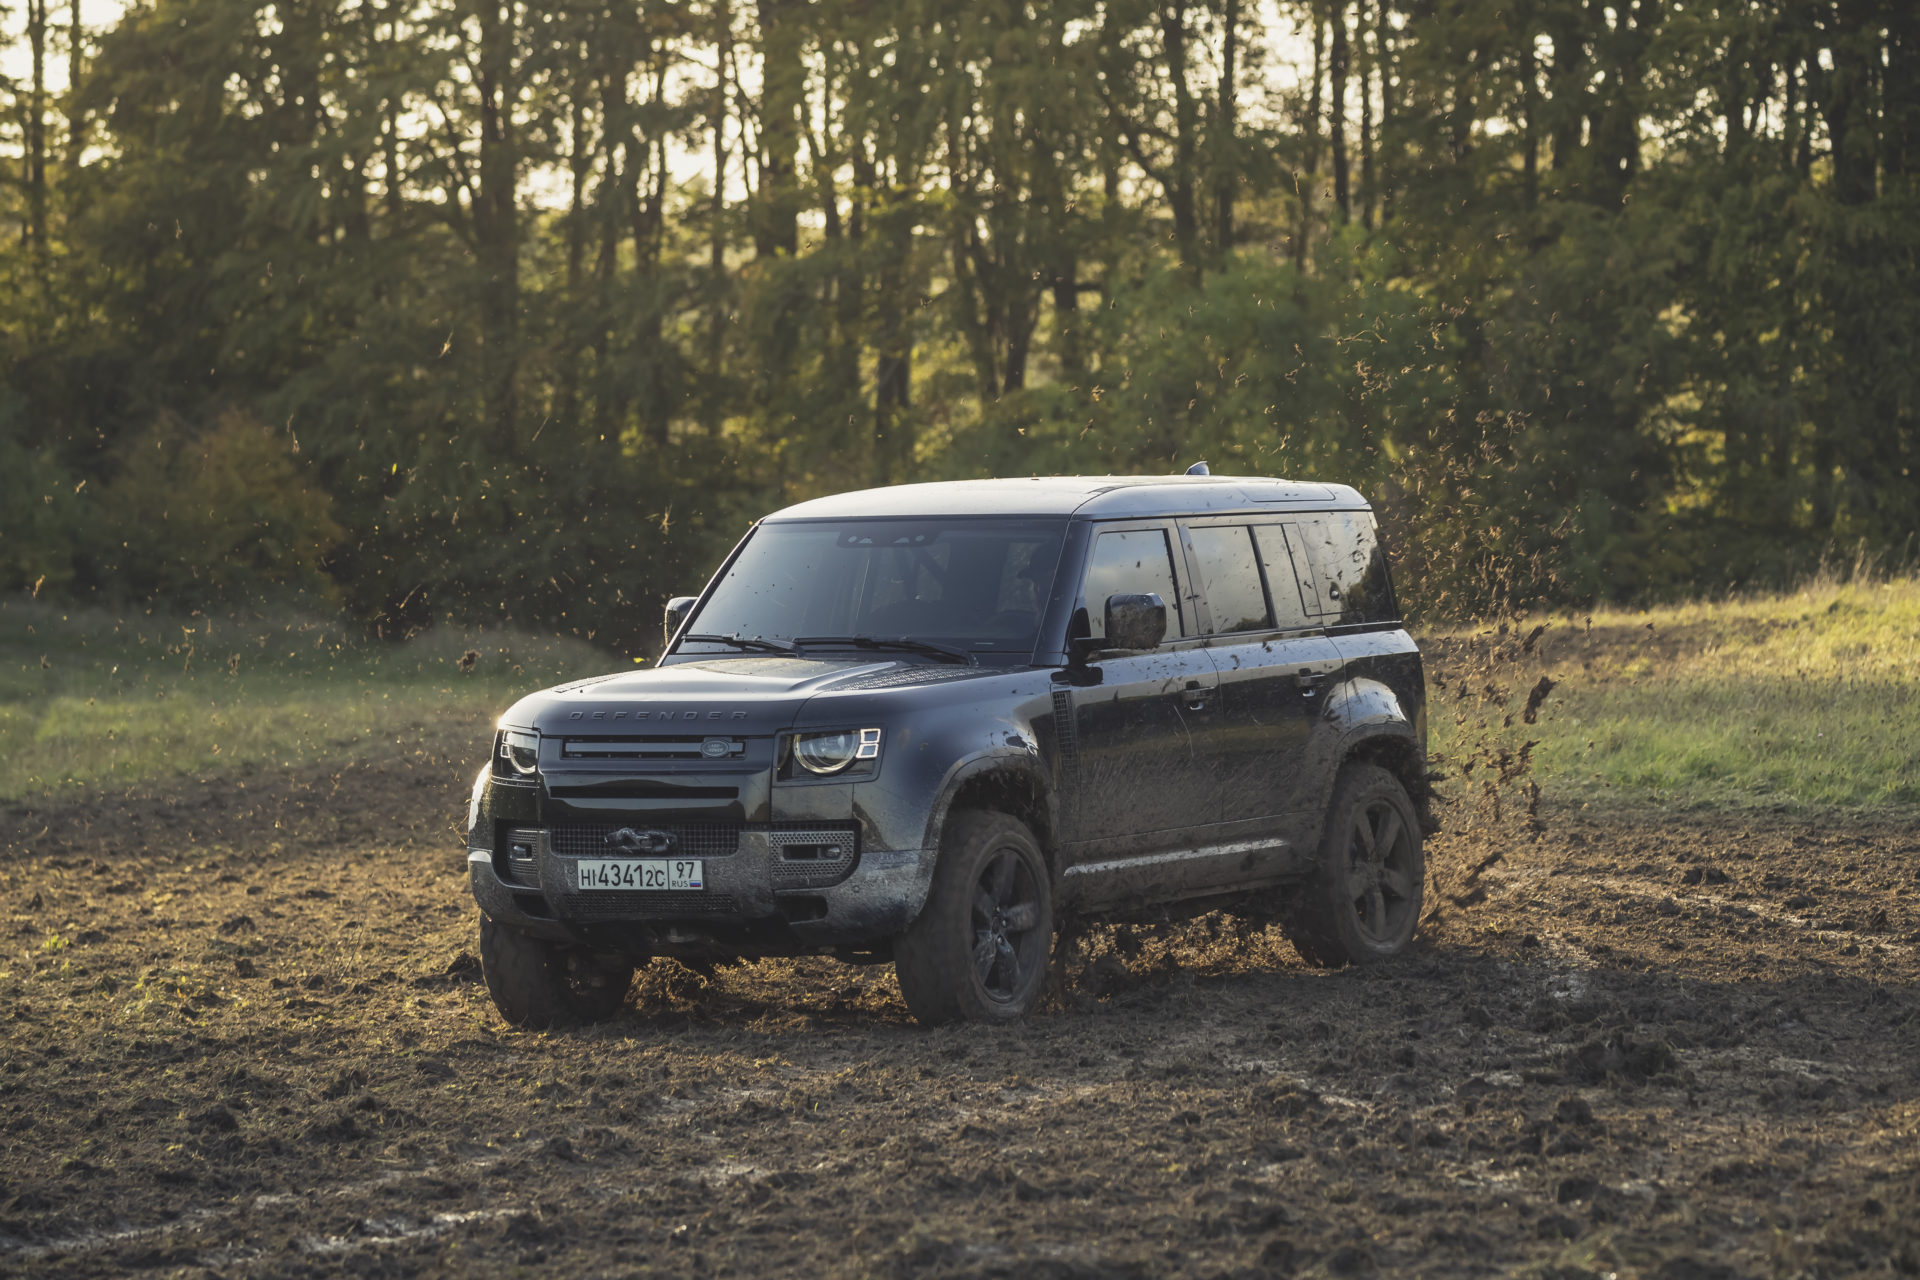 Behind_the_scenes_image_of_the_New_Land_Rover_Defender_featured_in_No_Time_To_Die__02[1]